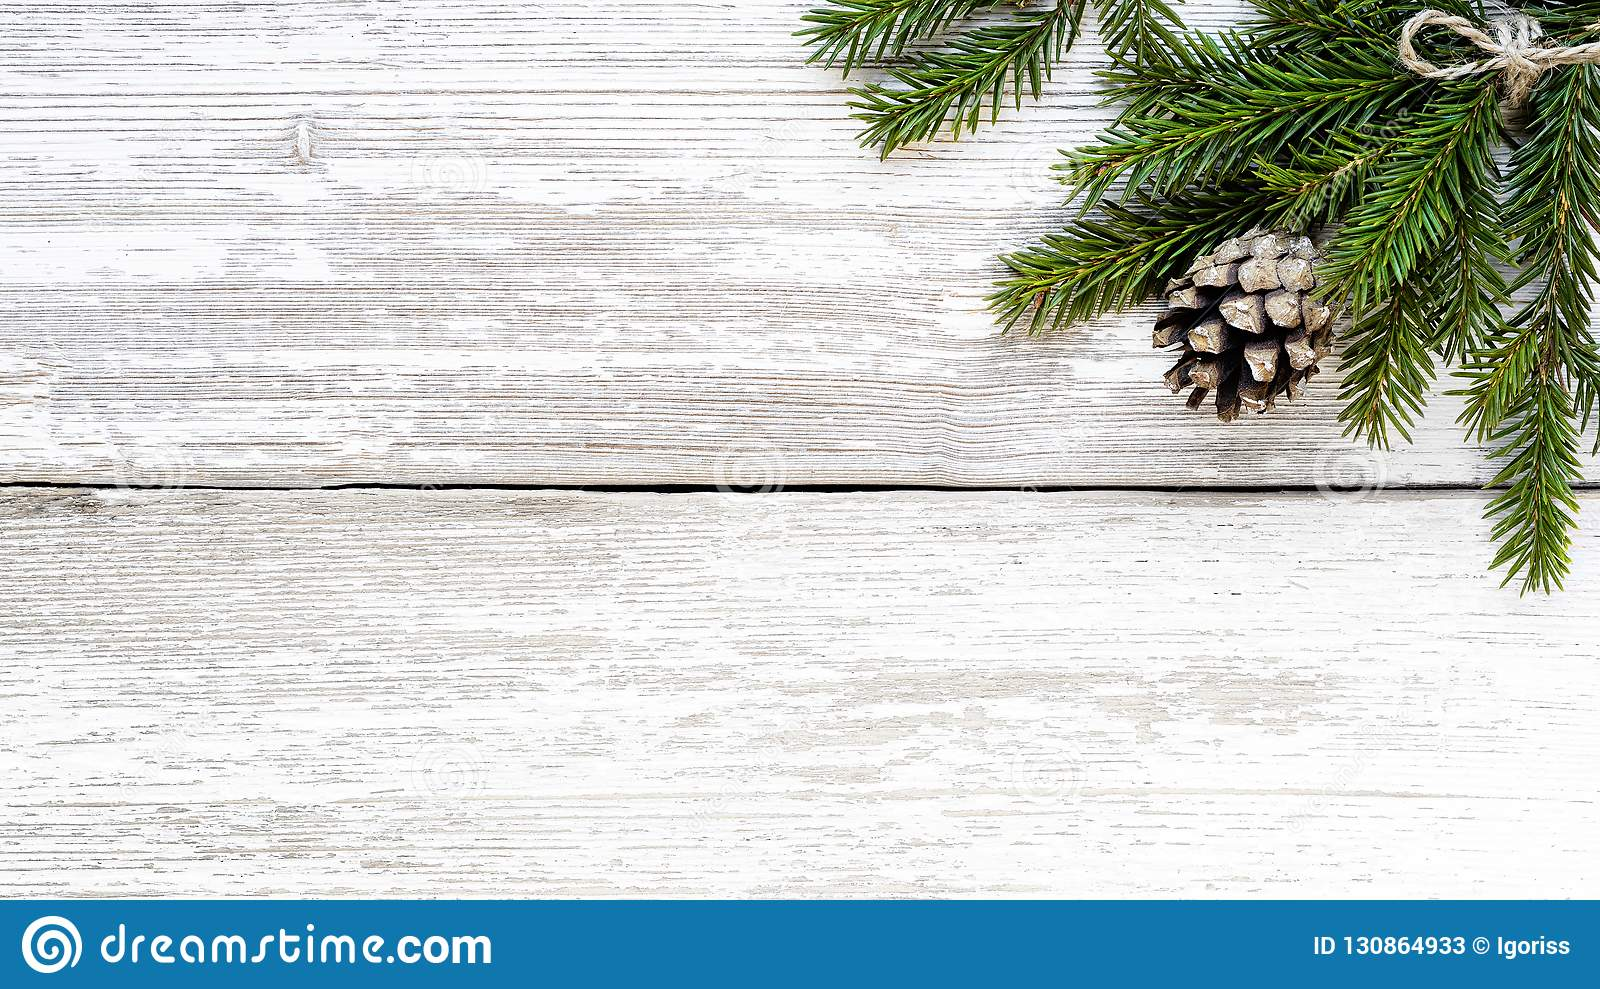 Fir Branch And Pine Cone On White Wood Plank Stock Image